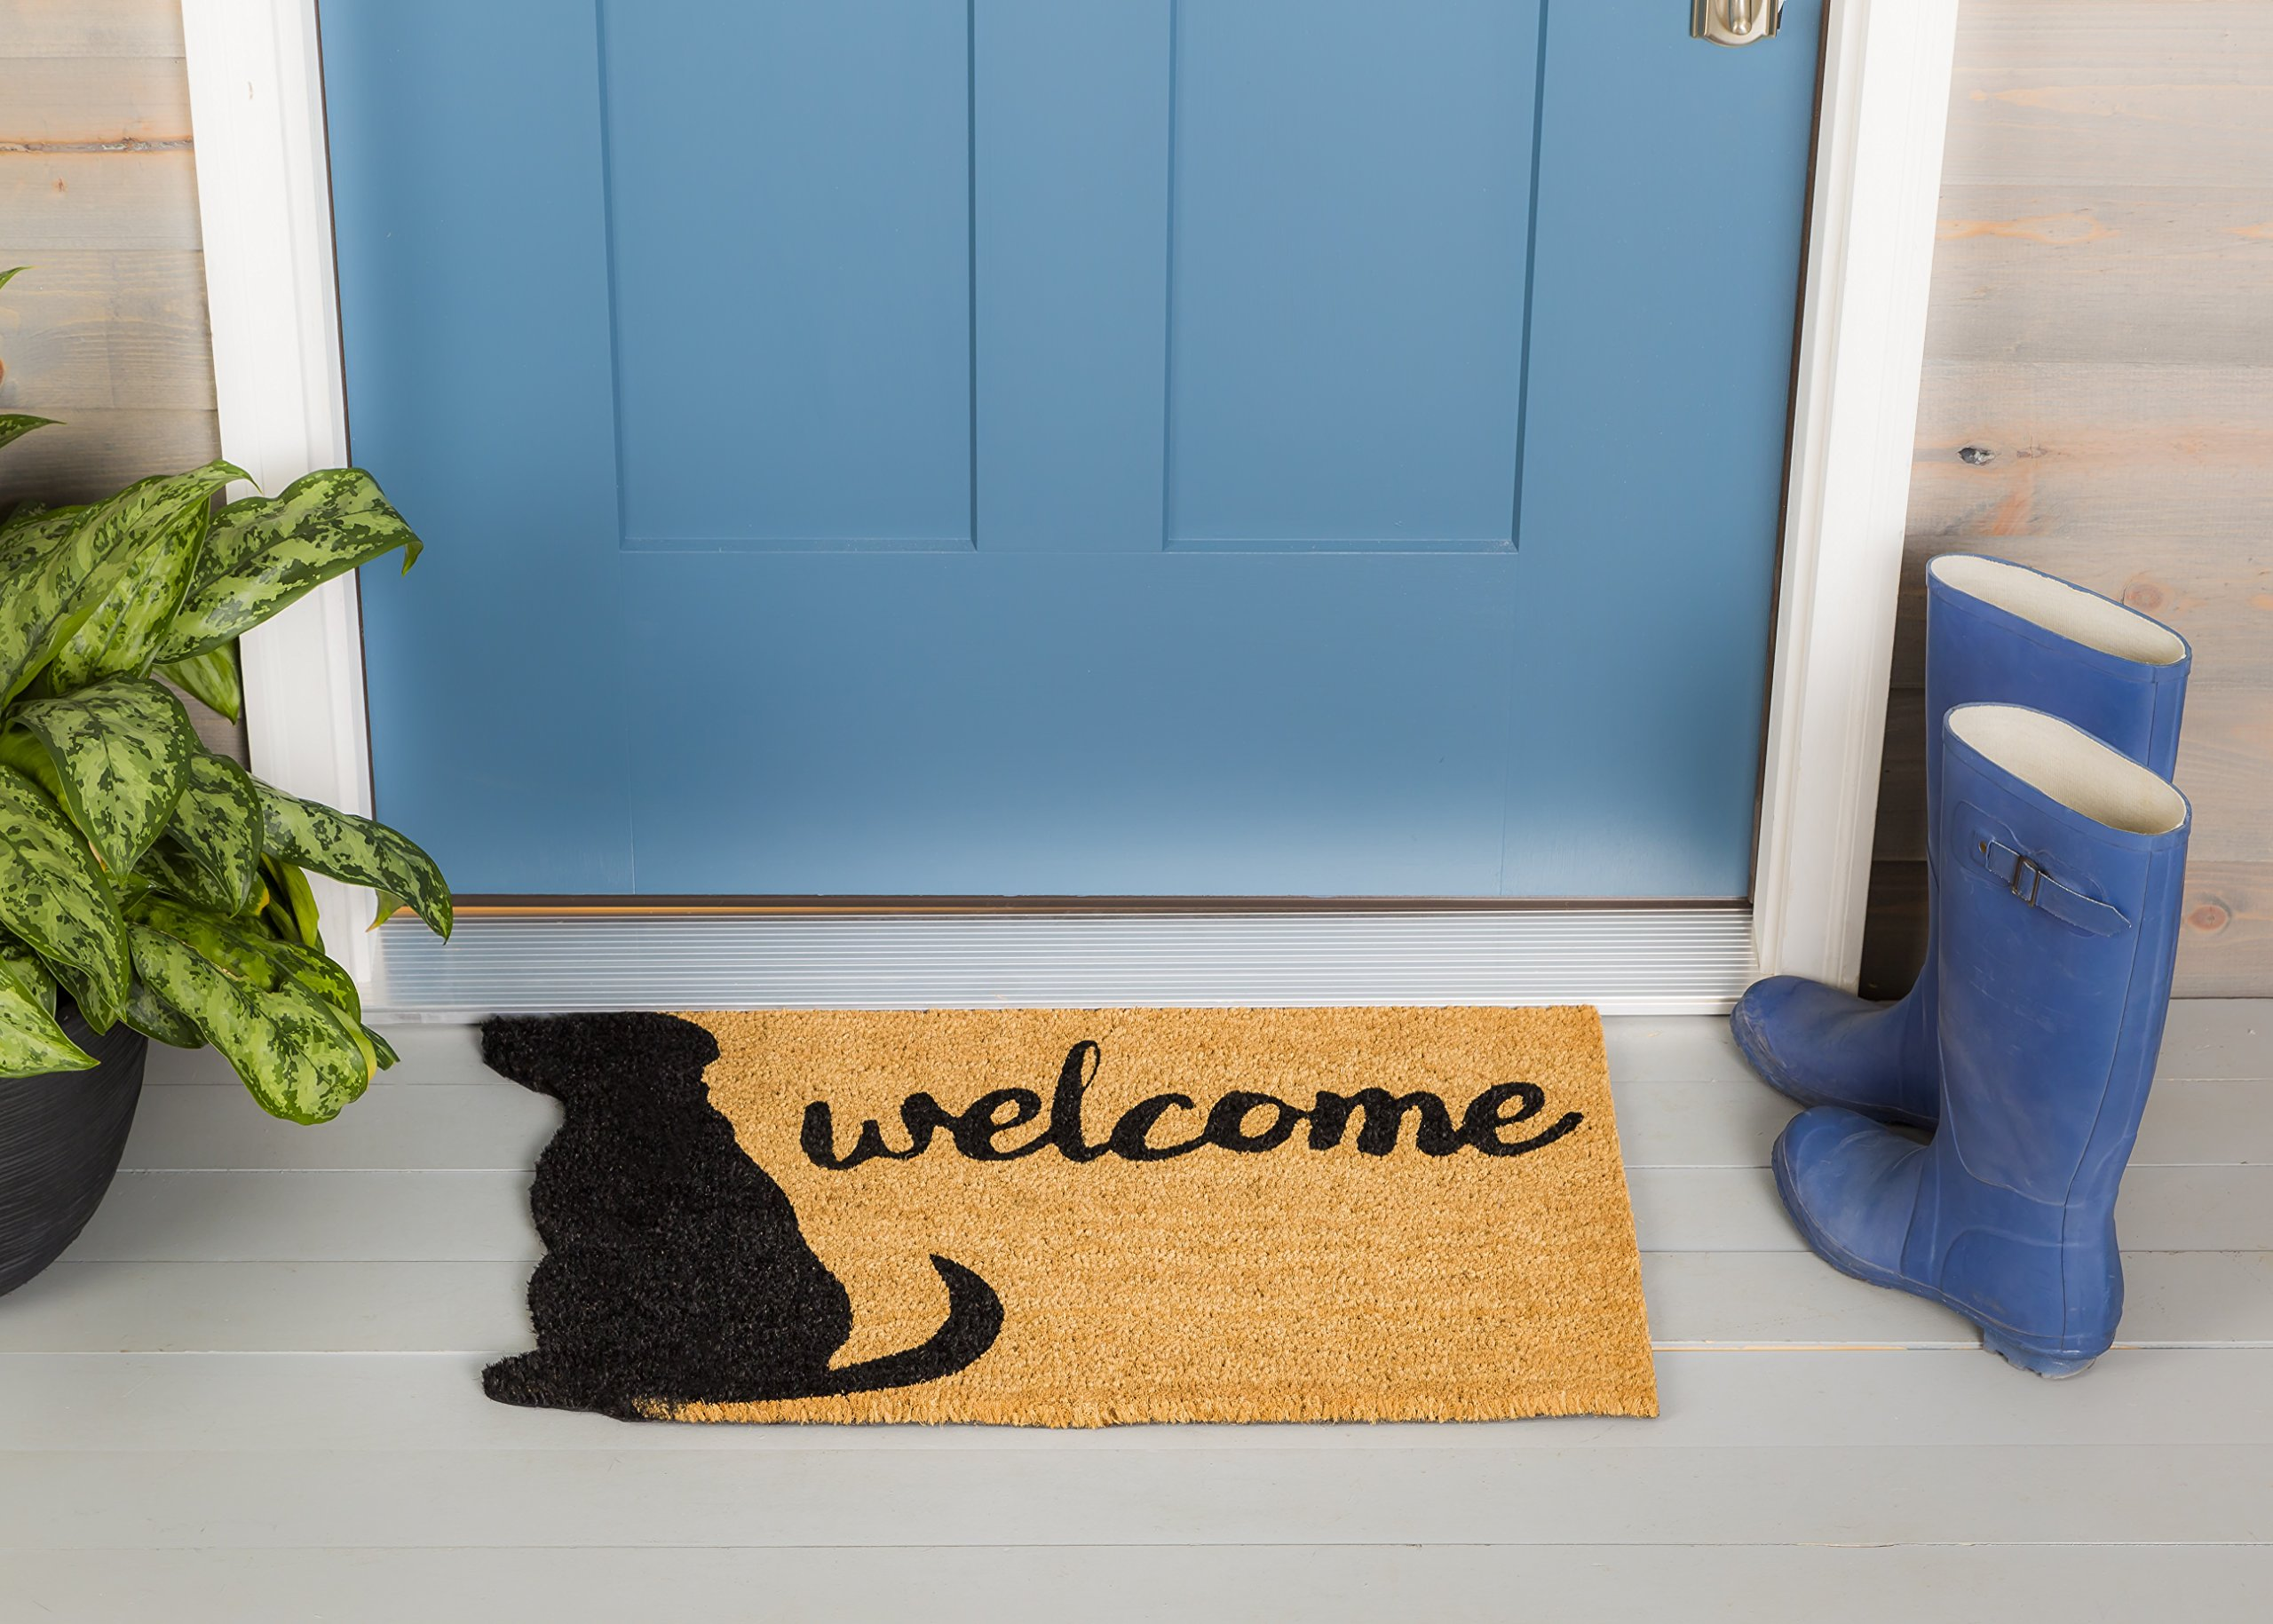 Evergreen Dog Welcome Shaped Coir Mat, 28 x 16 Inches